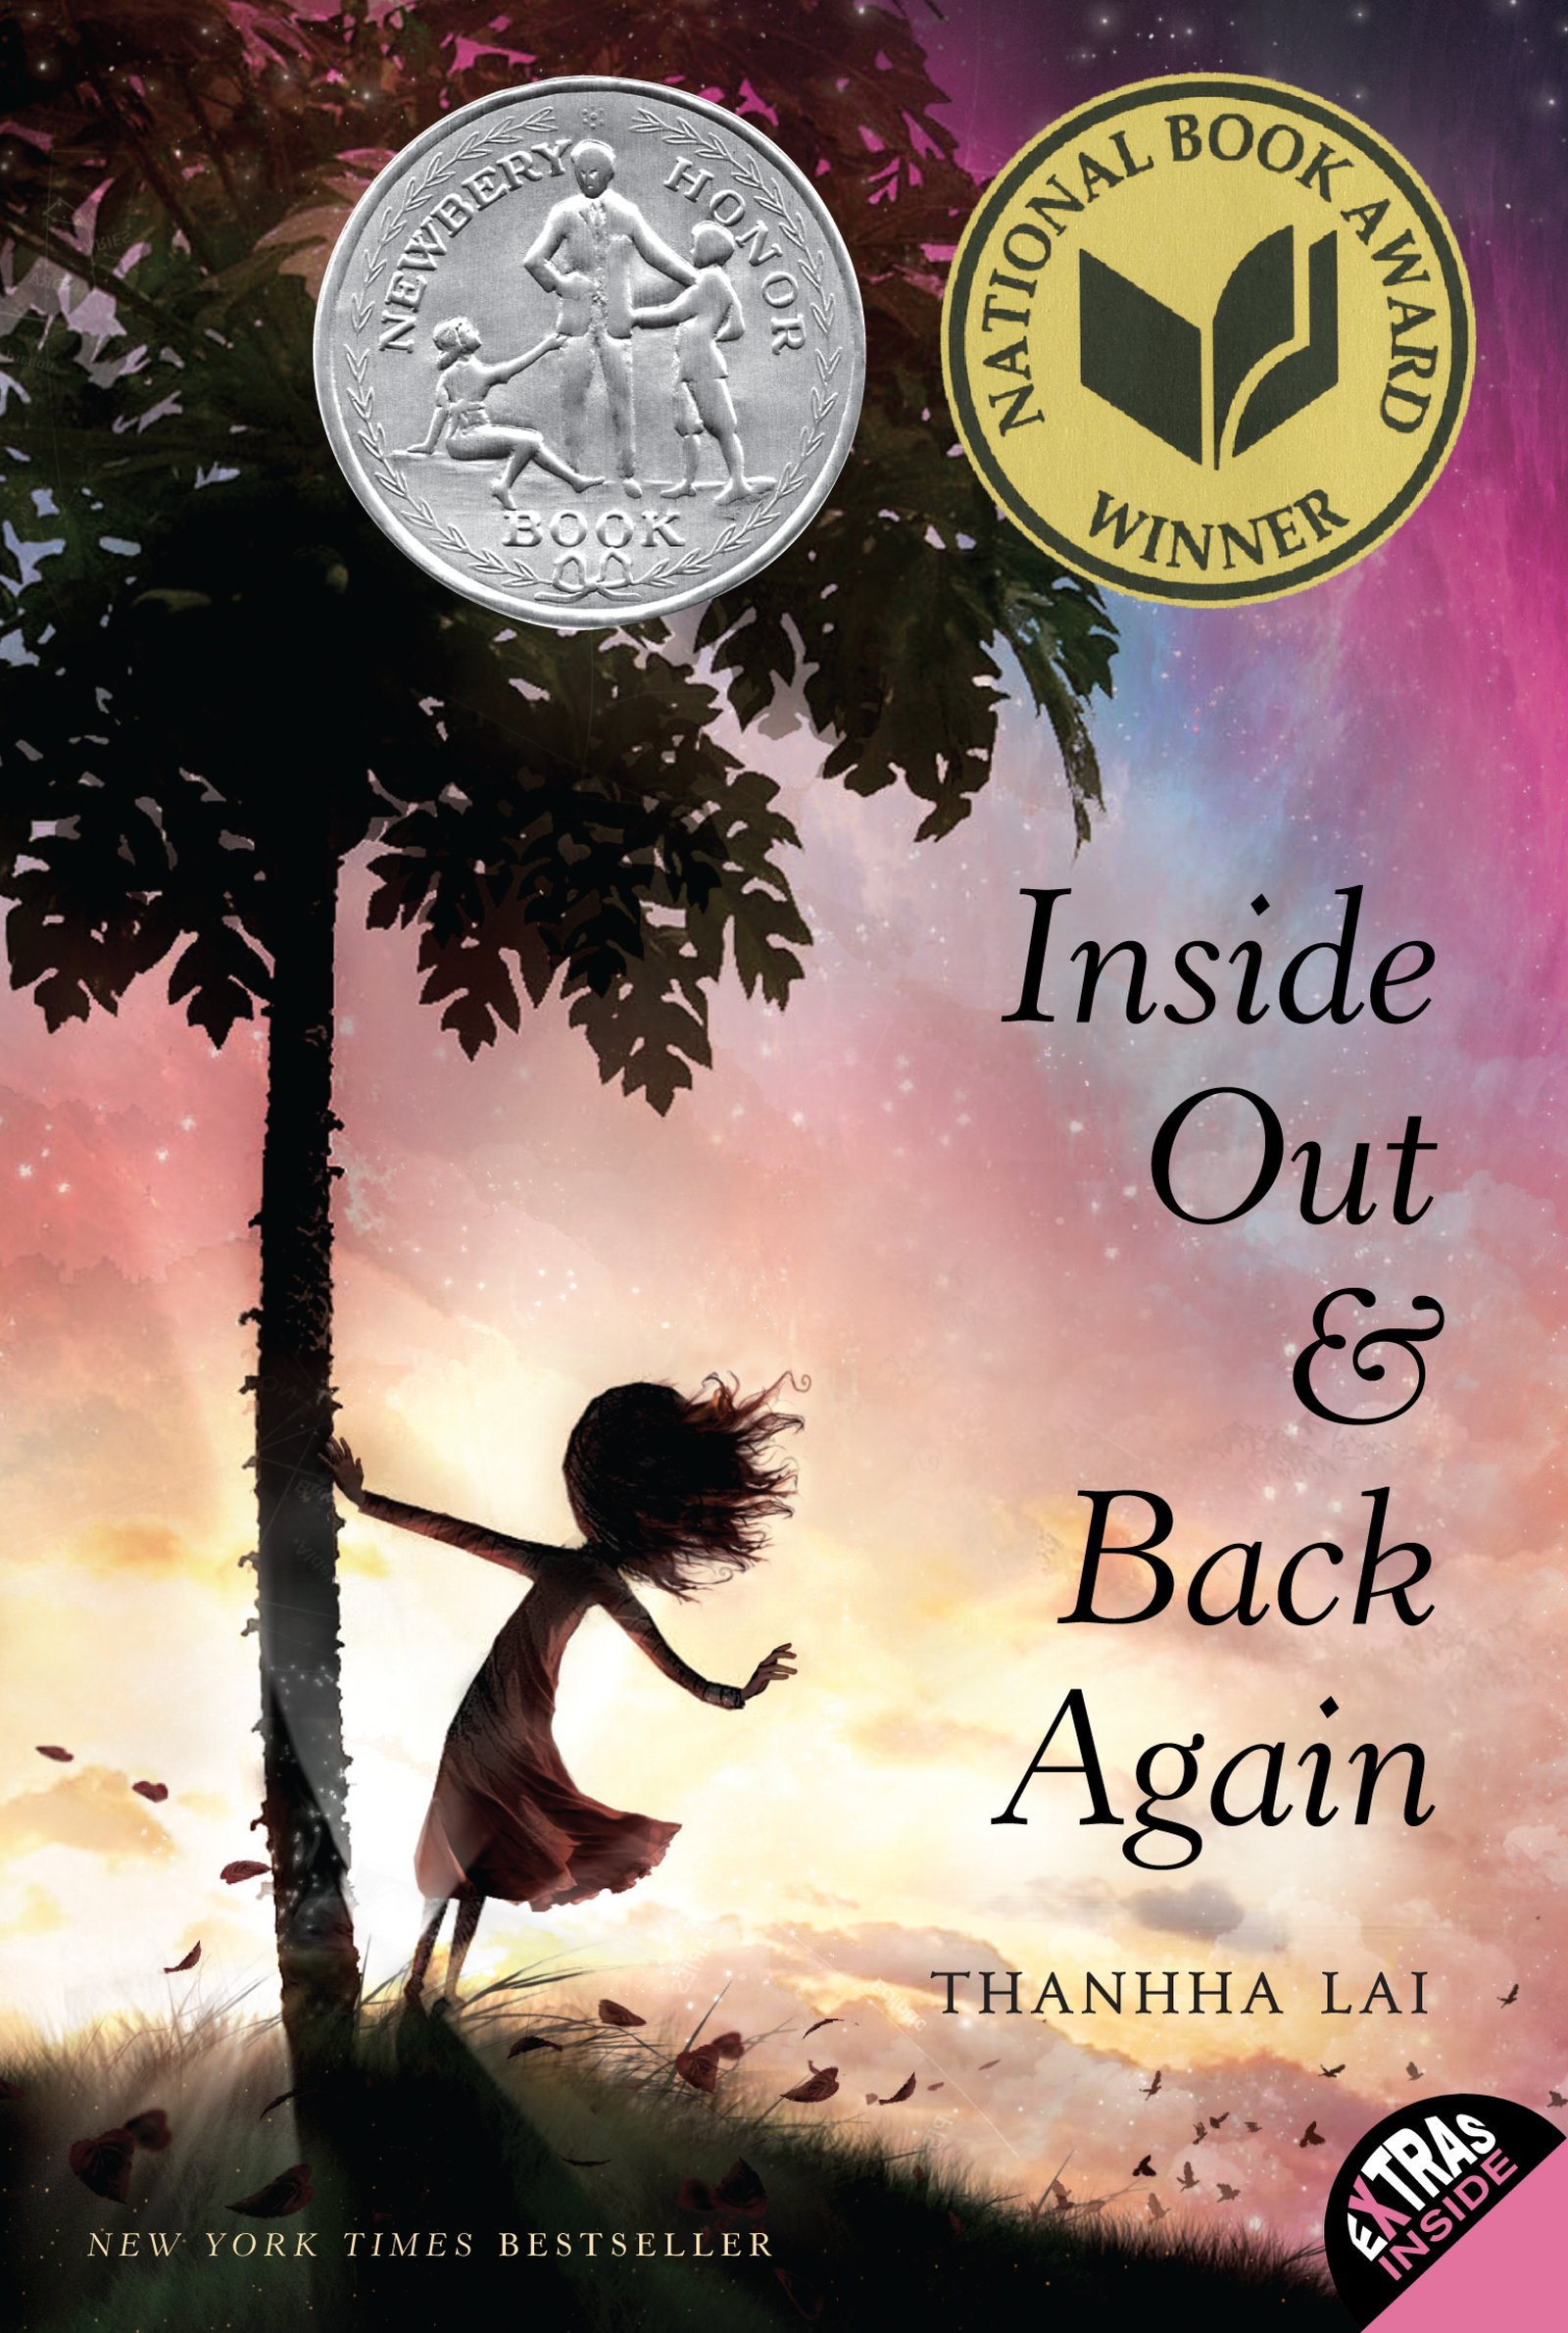 Inside Out & Back Again , by Thanhha Lai